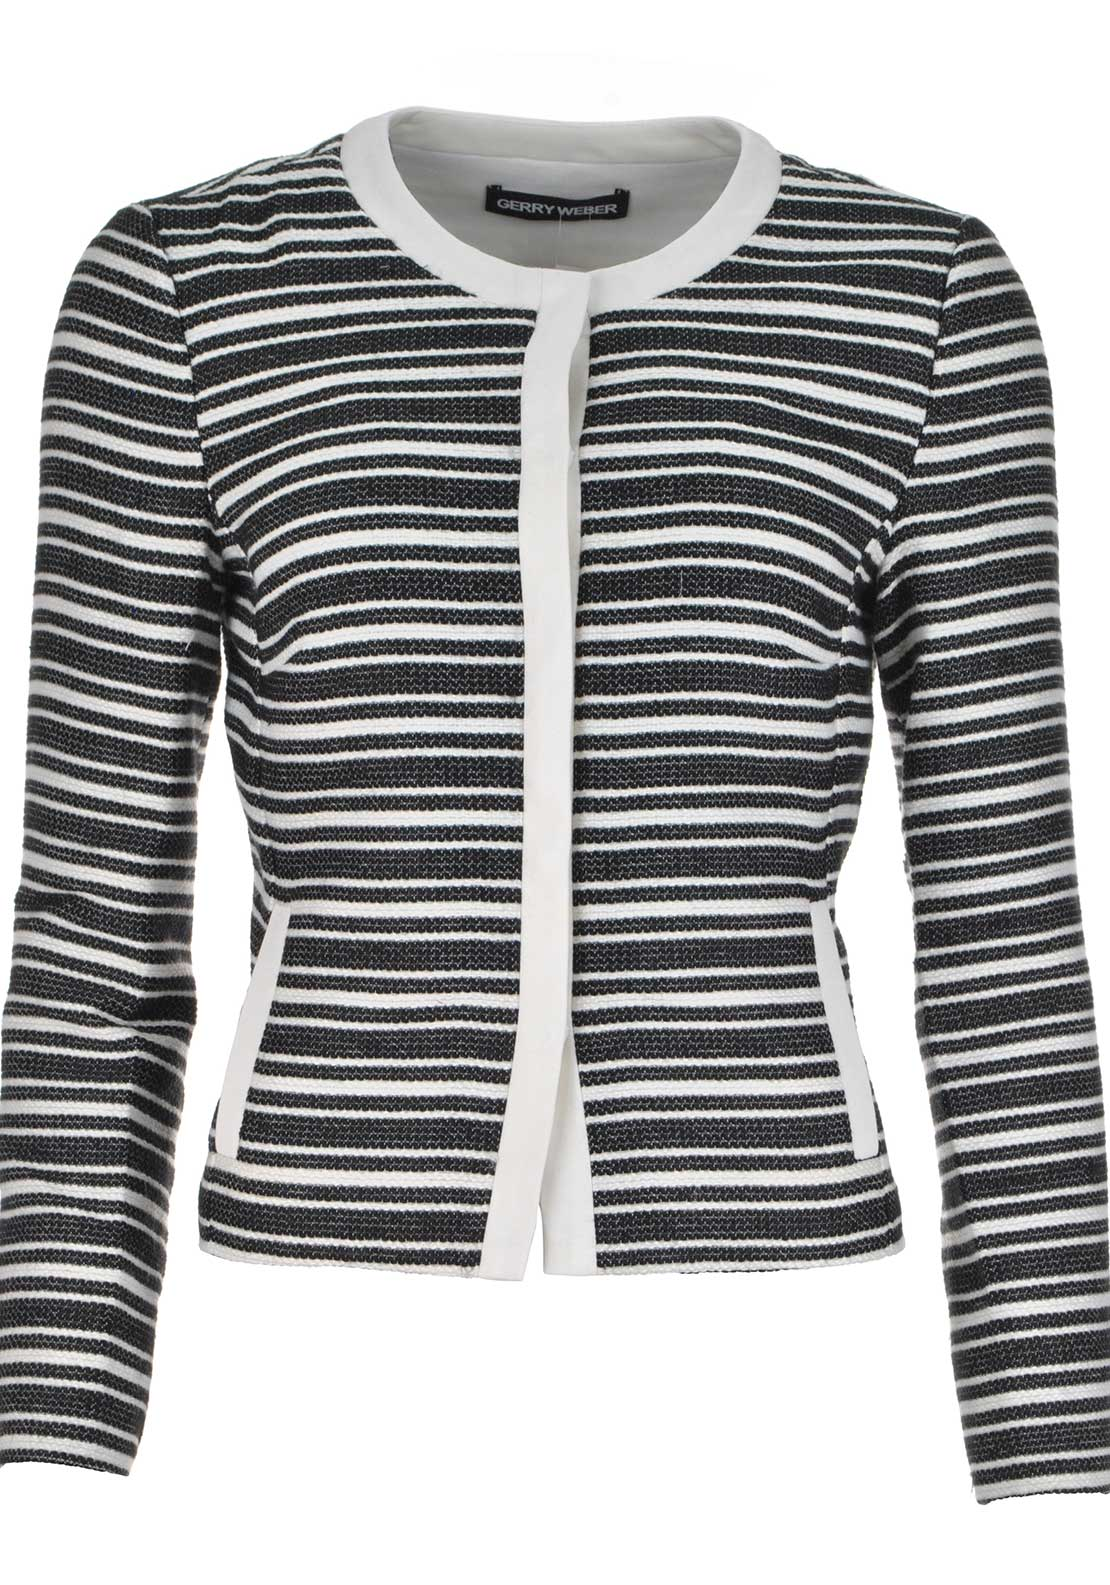 Gerry Weber Striped Cropped Jacket, Black and White